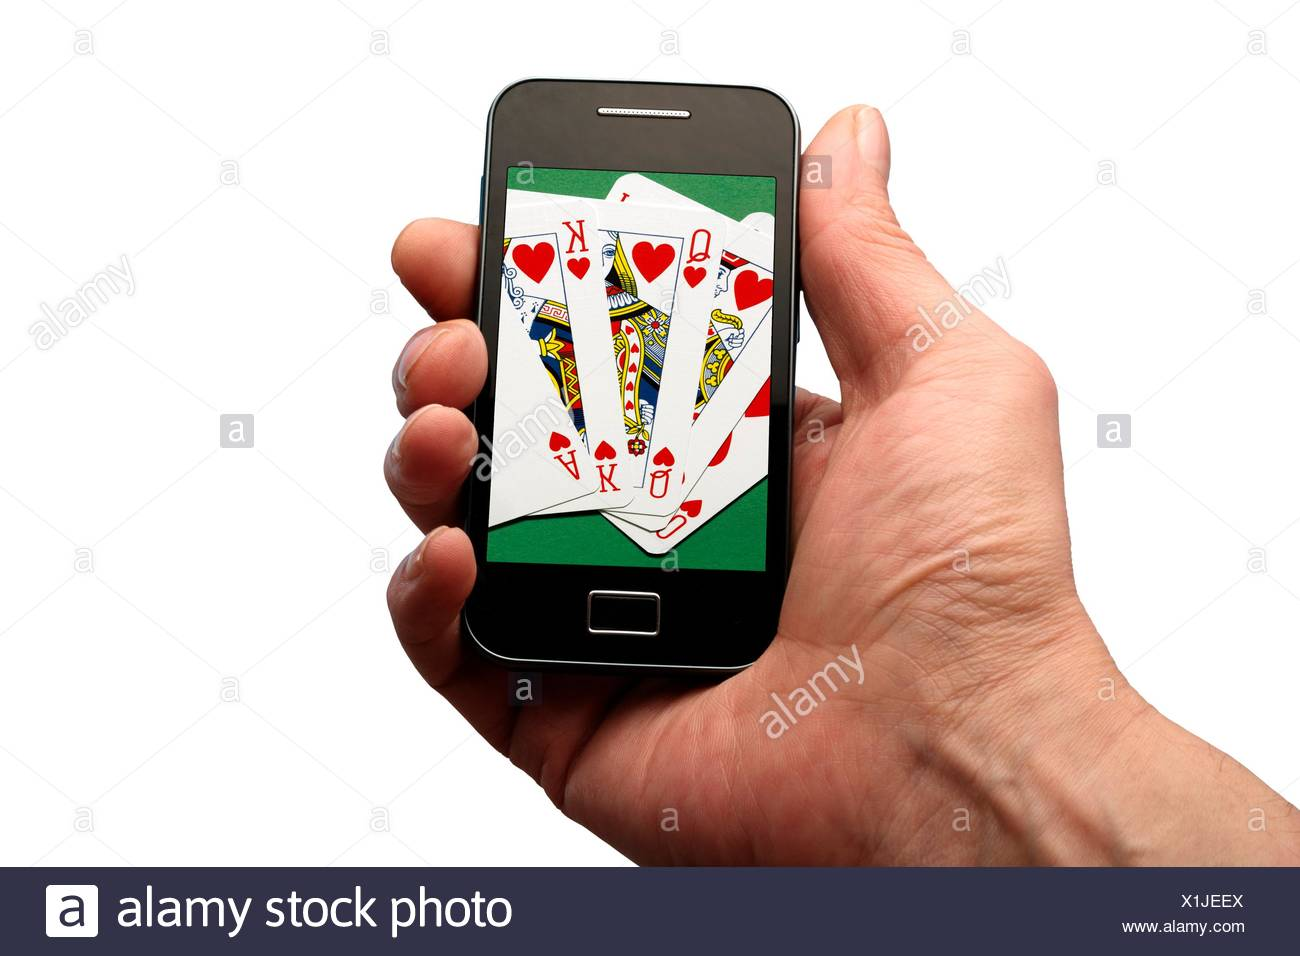 online gambling playing game gambling risk chance playing cards hearts holding smartphone iphone app plain background white background